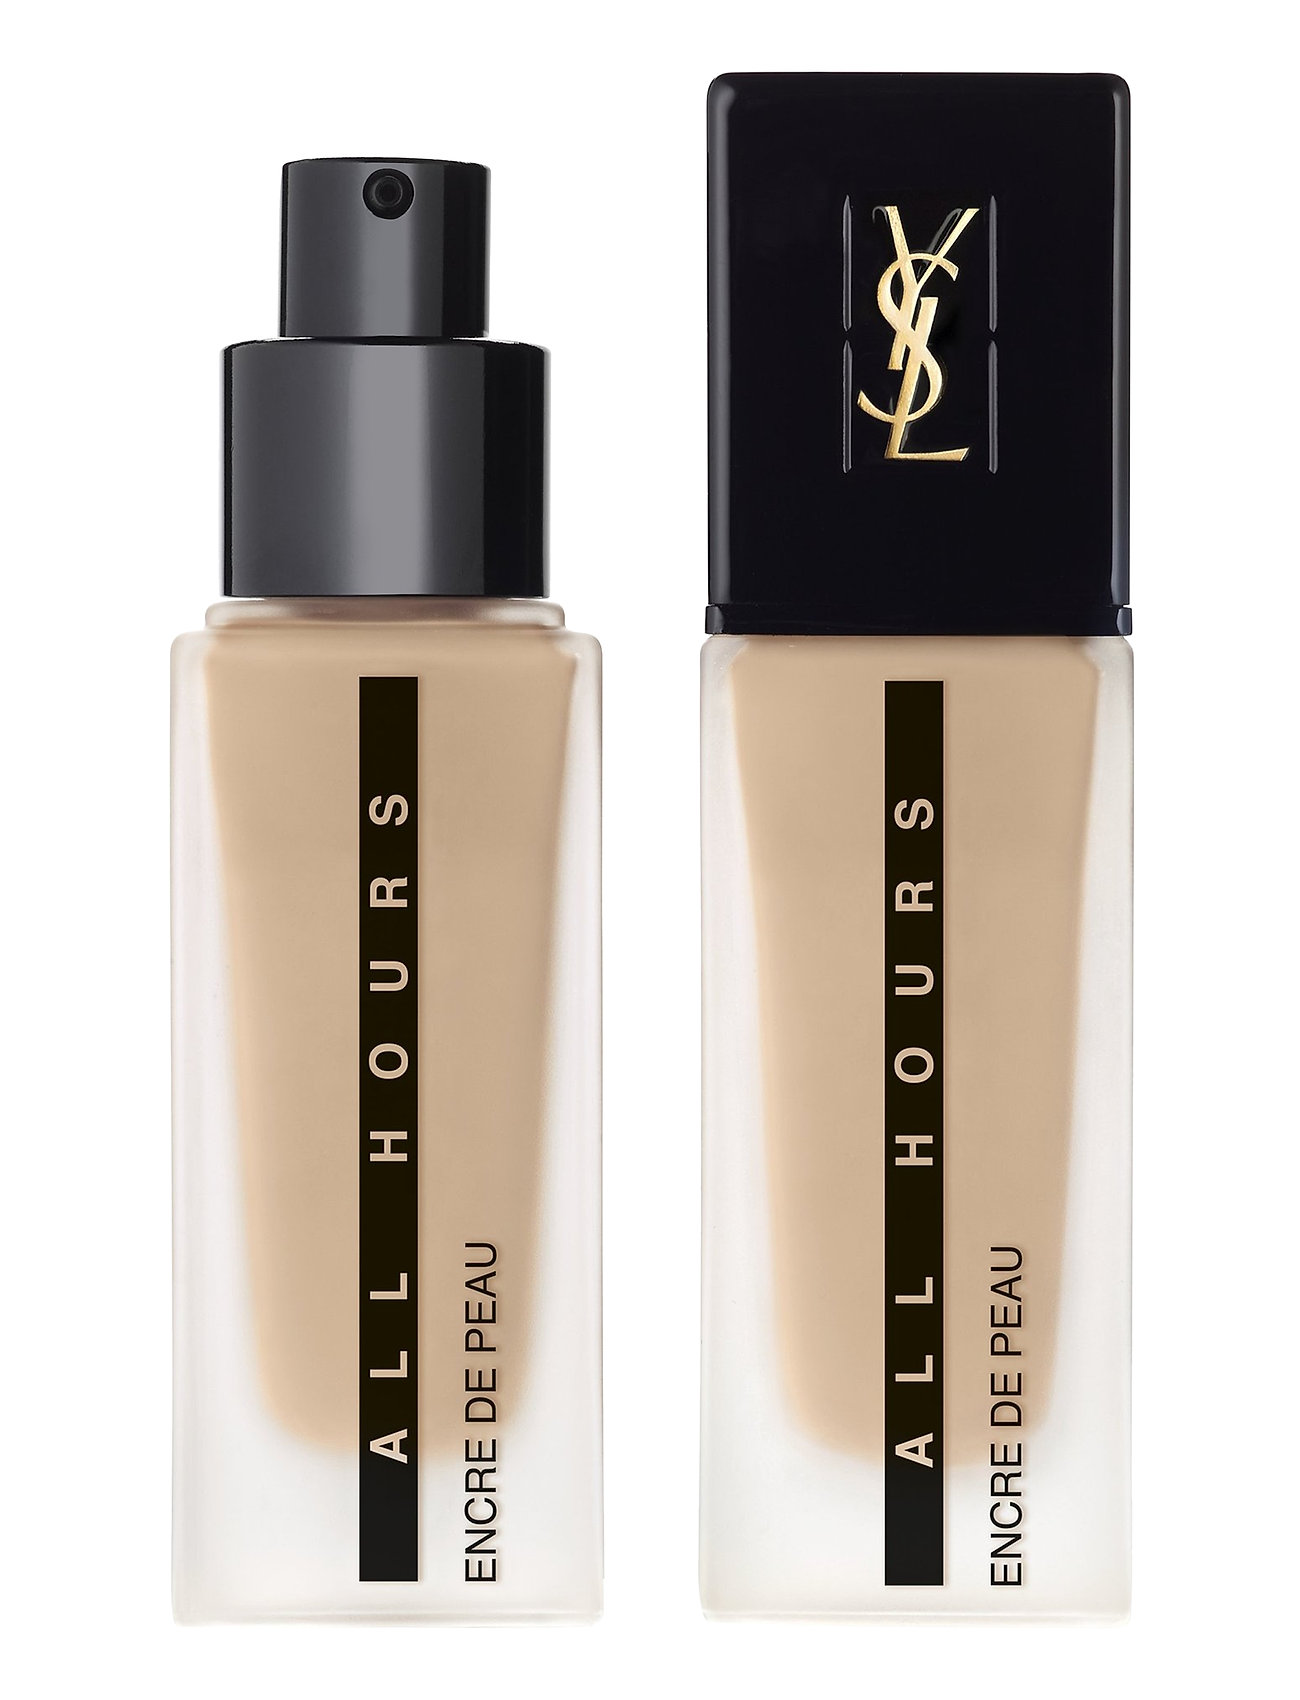 yves saint laurent Encre de peau all hours b40 25 ml fra boozt.com dk